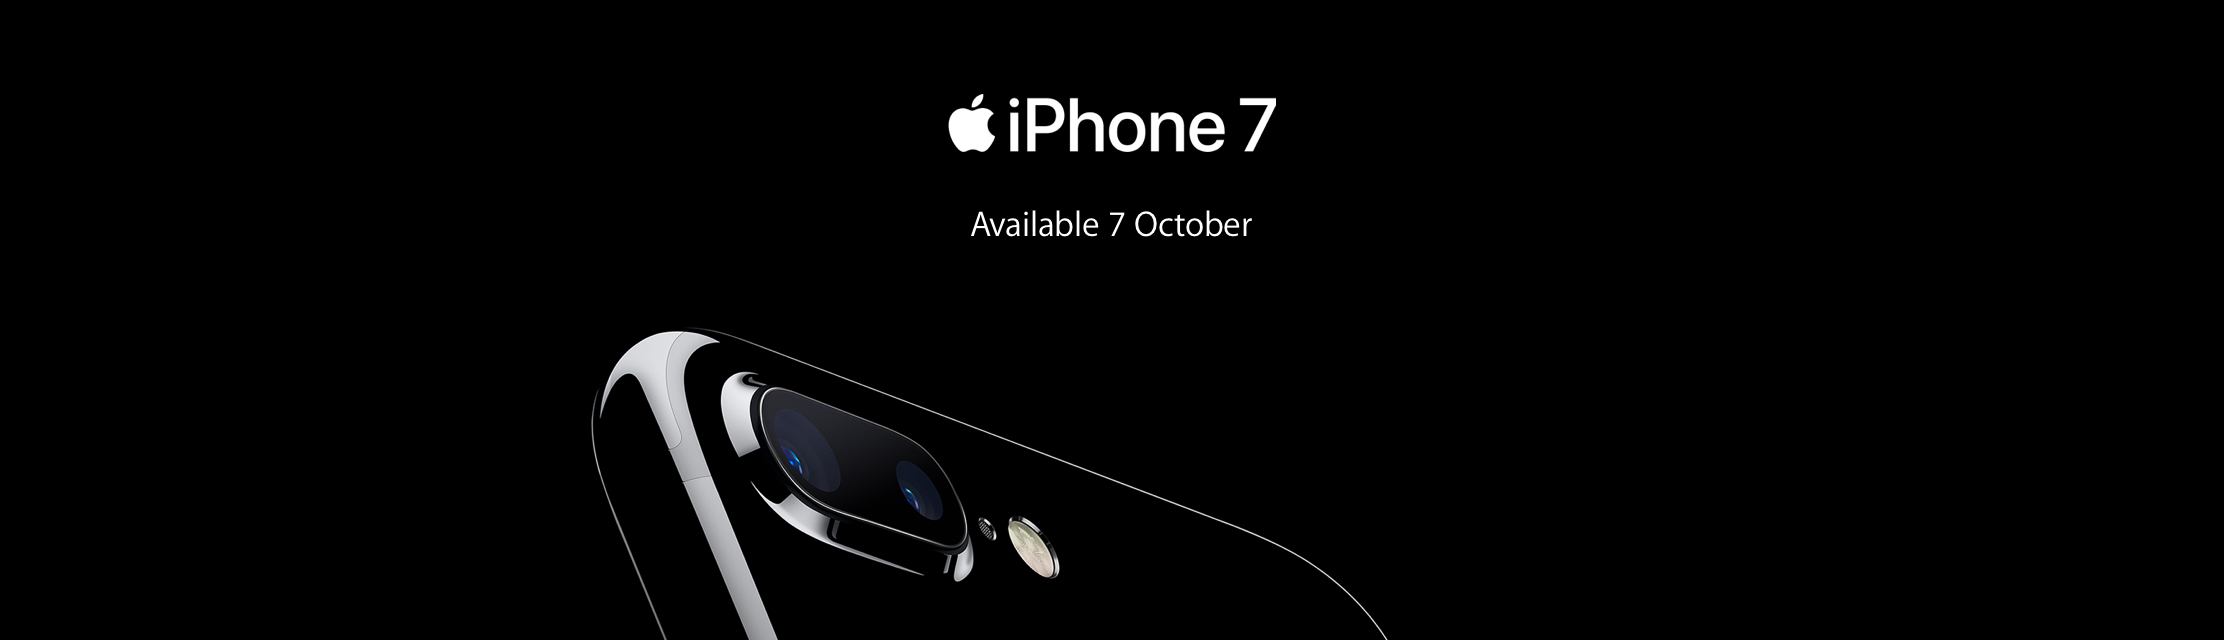 iPhone7 available from 7th October 2016